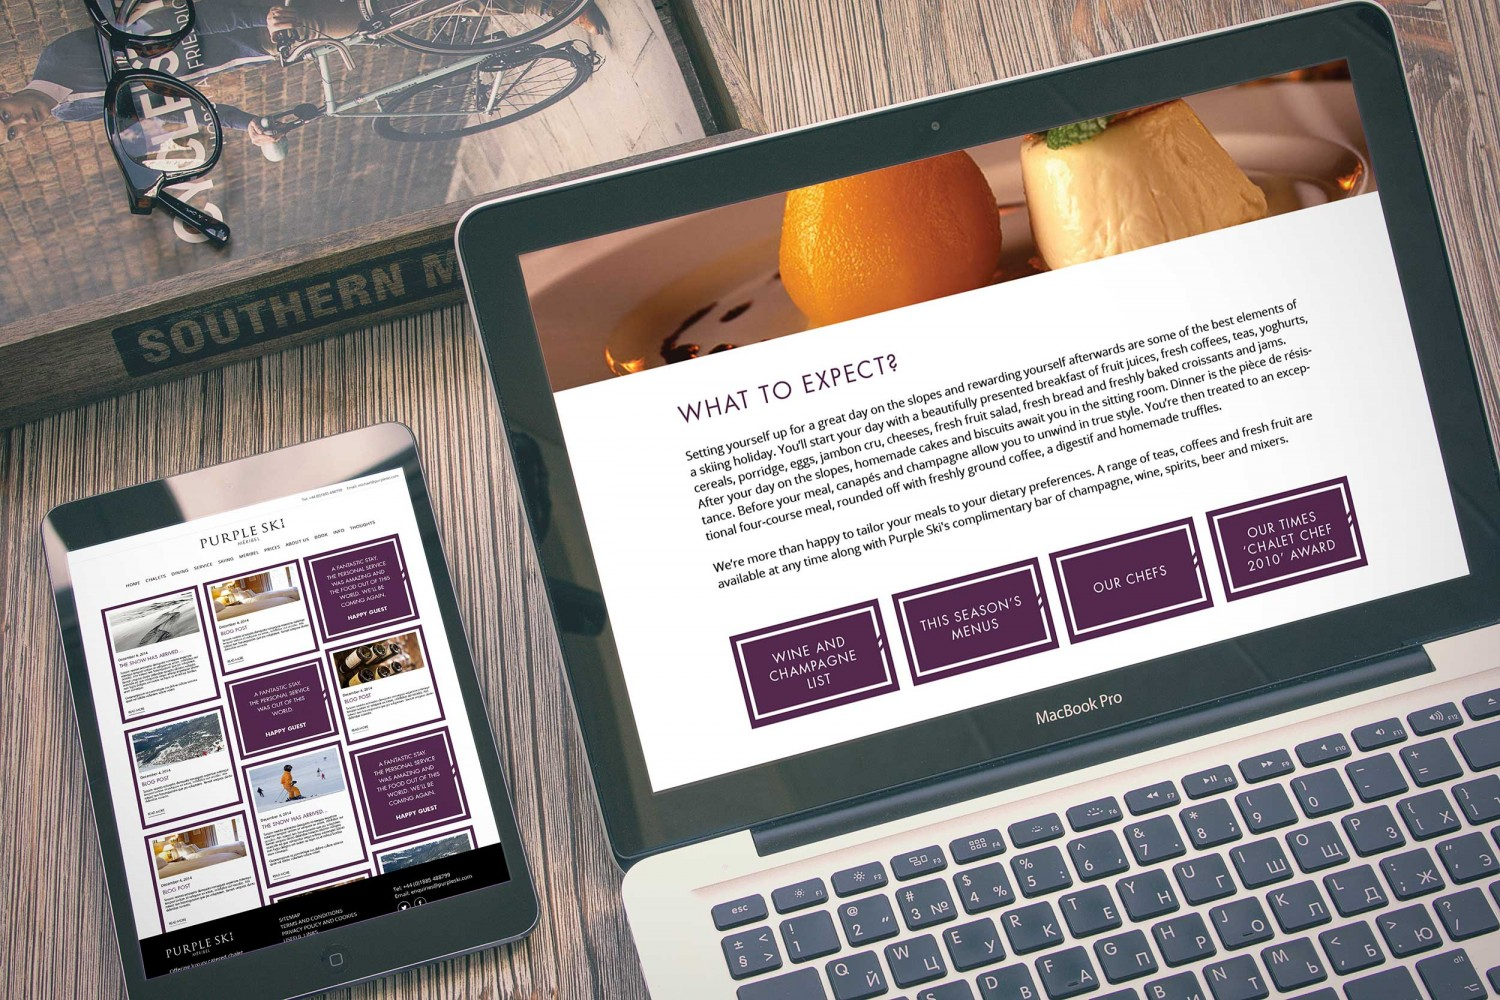 Website design for Purple Ski